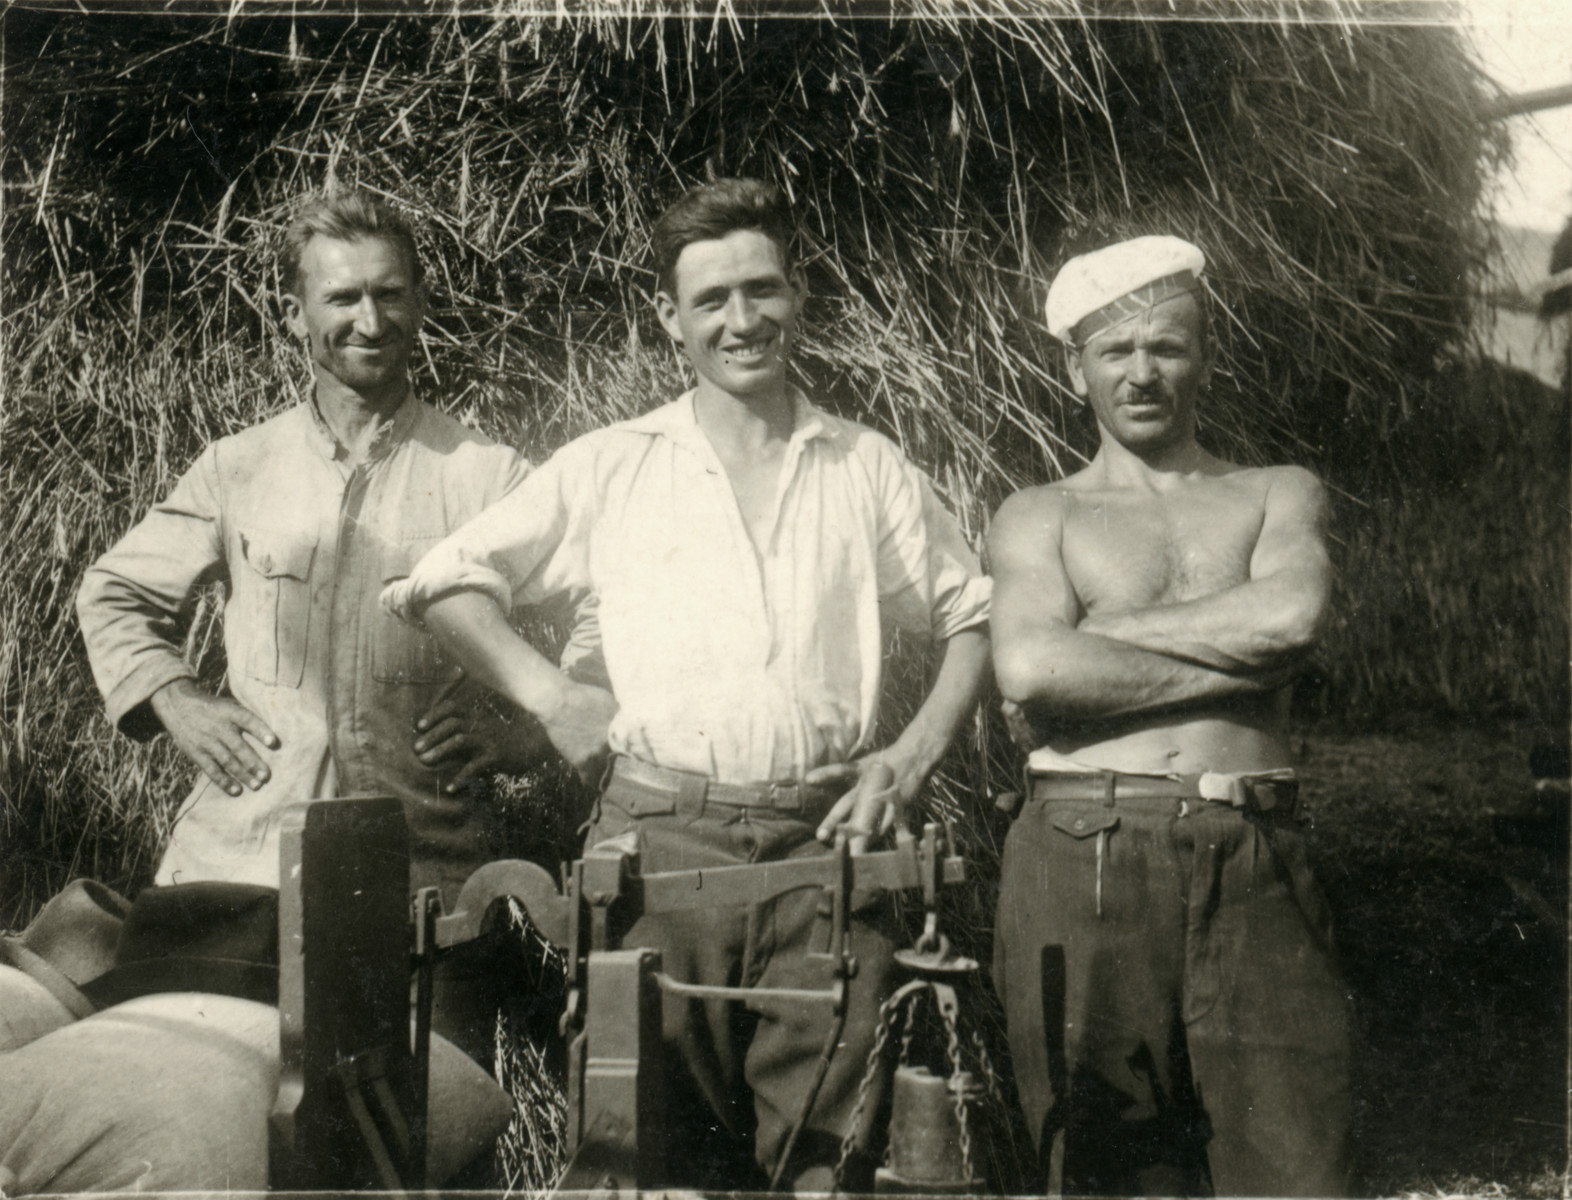 Avraham Koviliak (right) and two other men work on a farm.